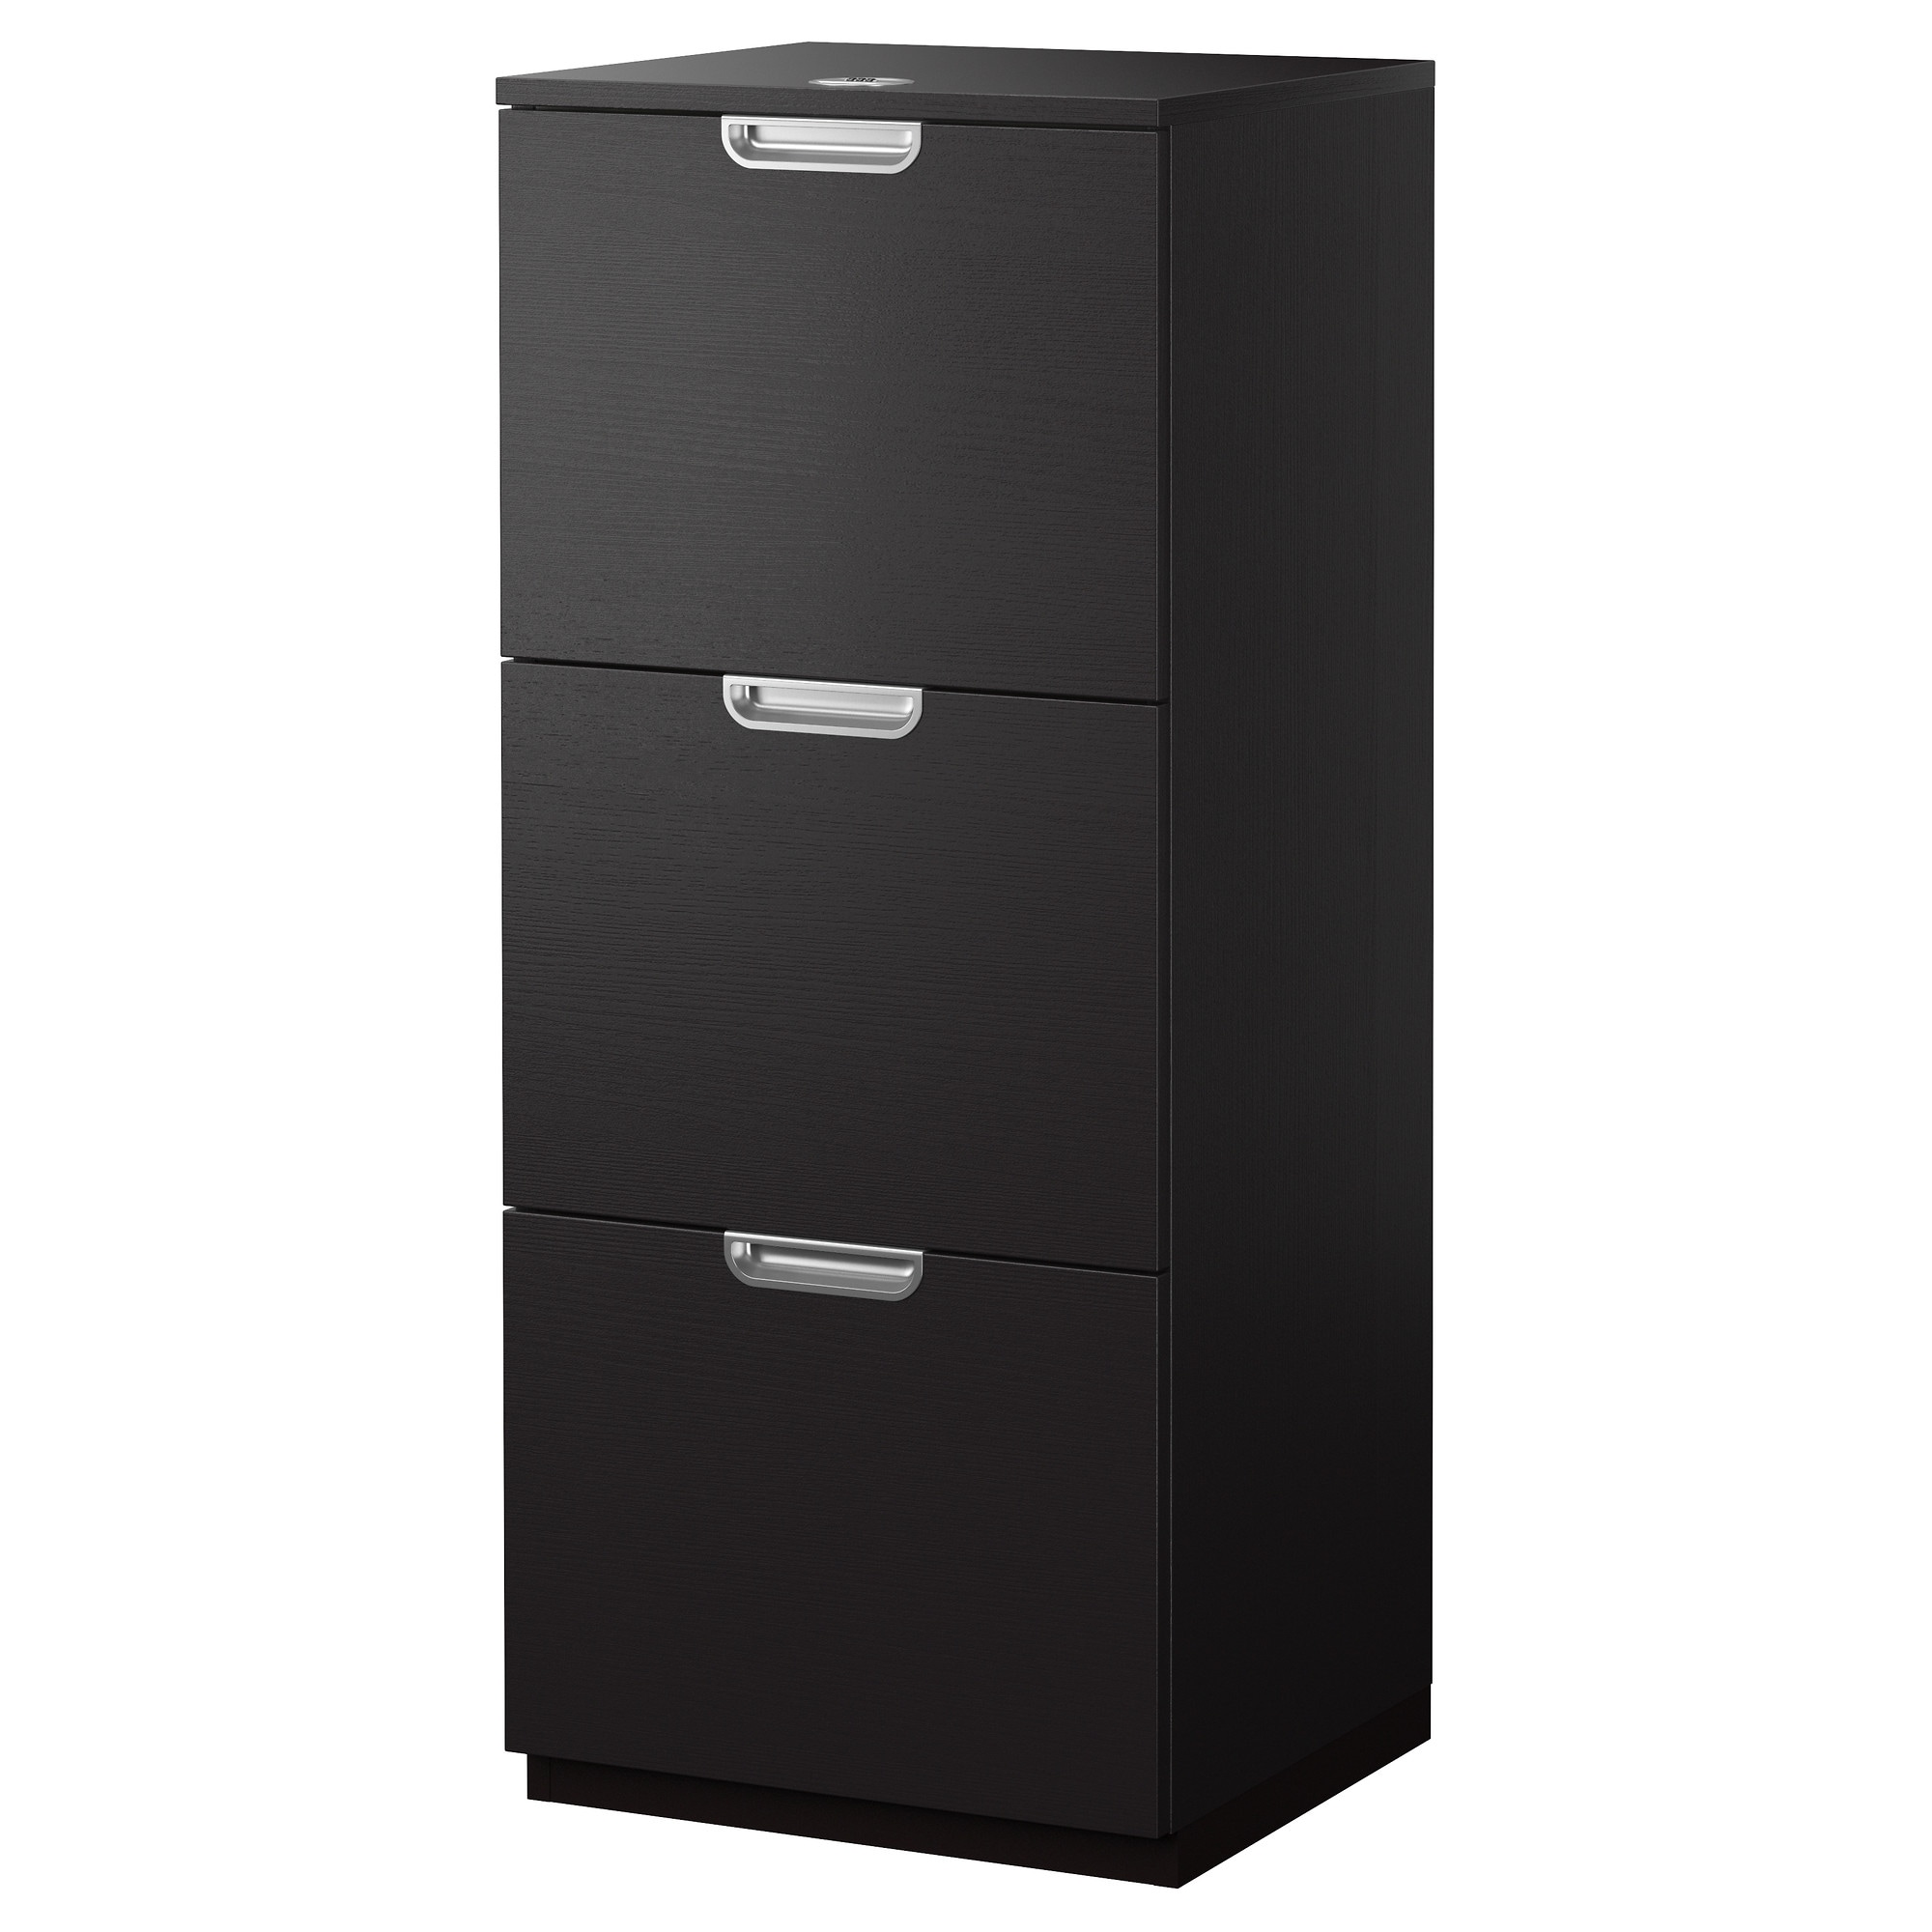 High Quality GALANT File Cabinet   Black Brown   IKEA